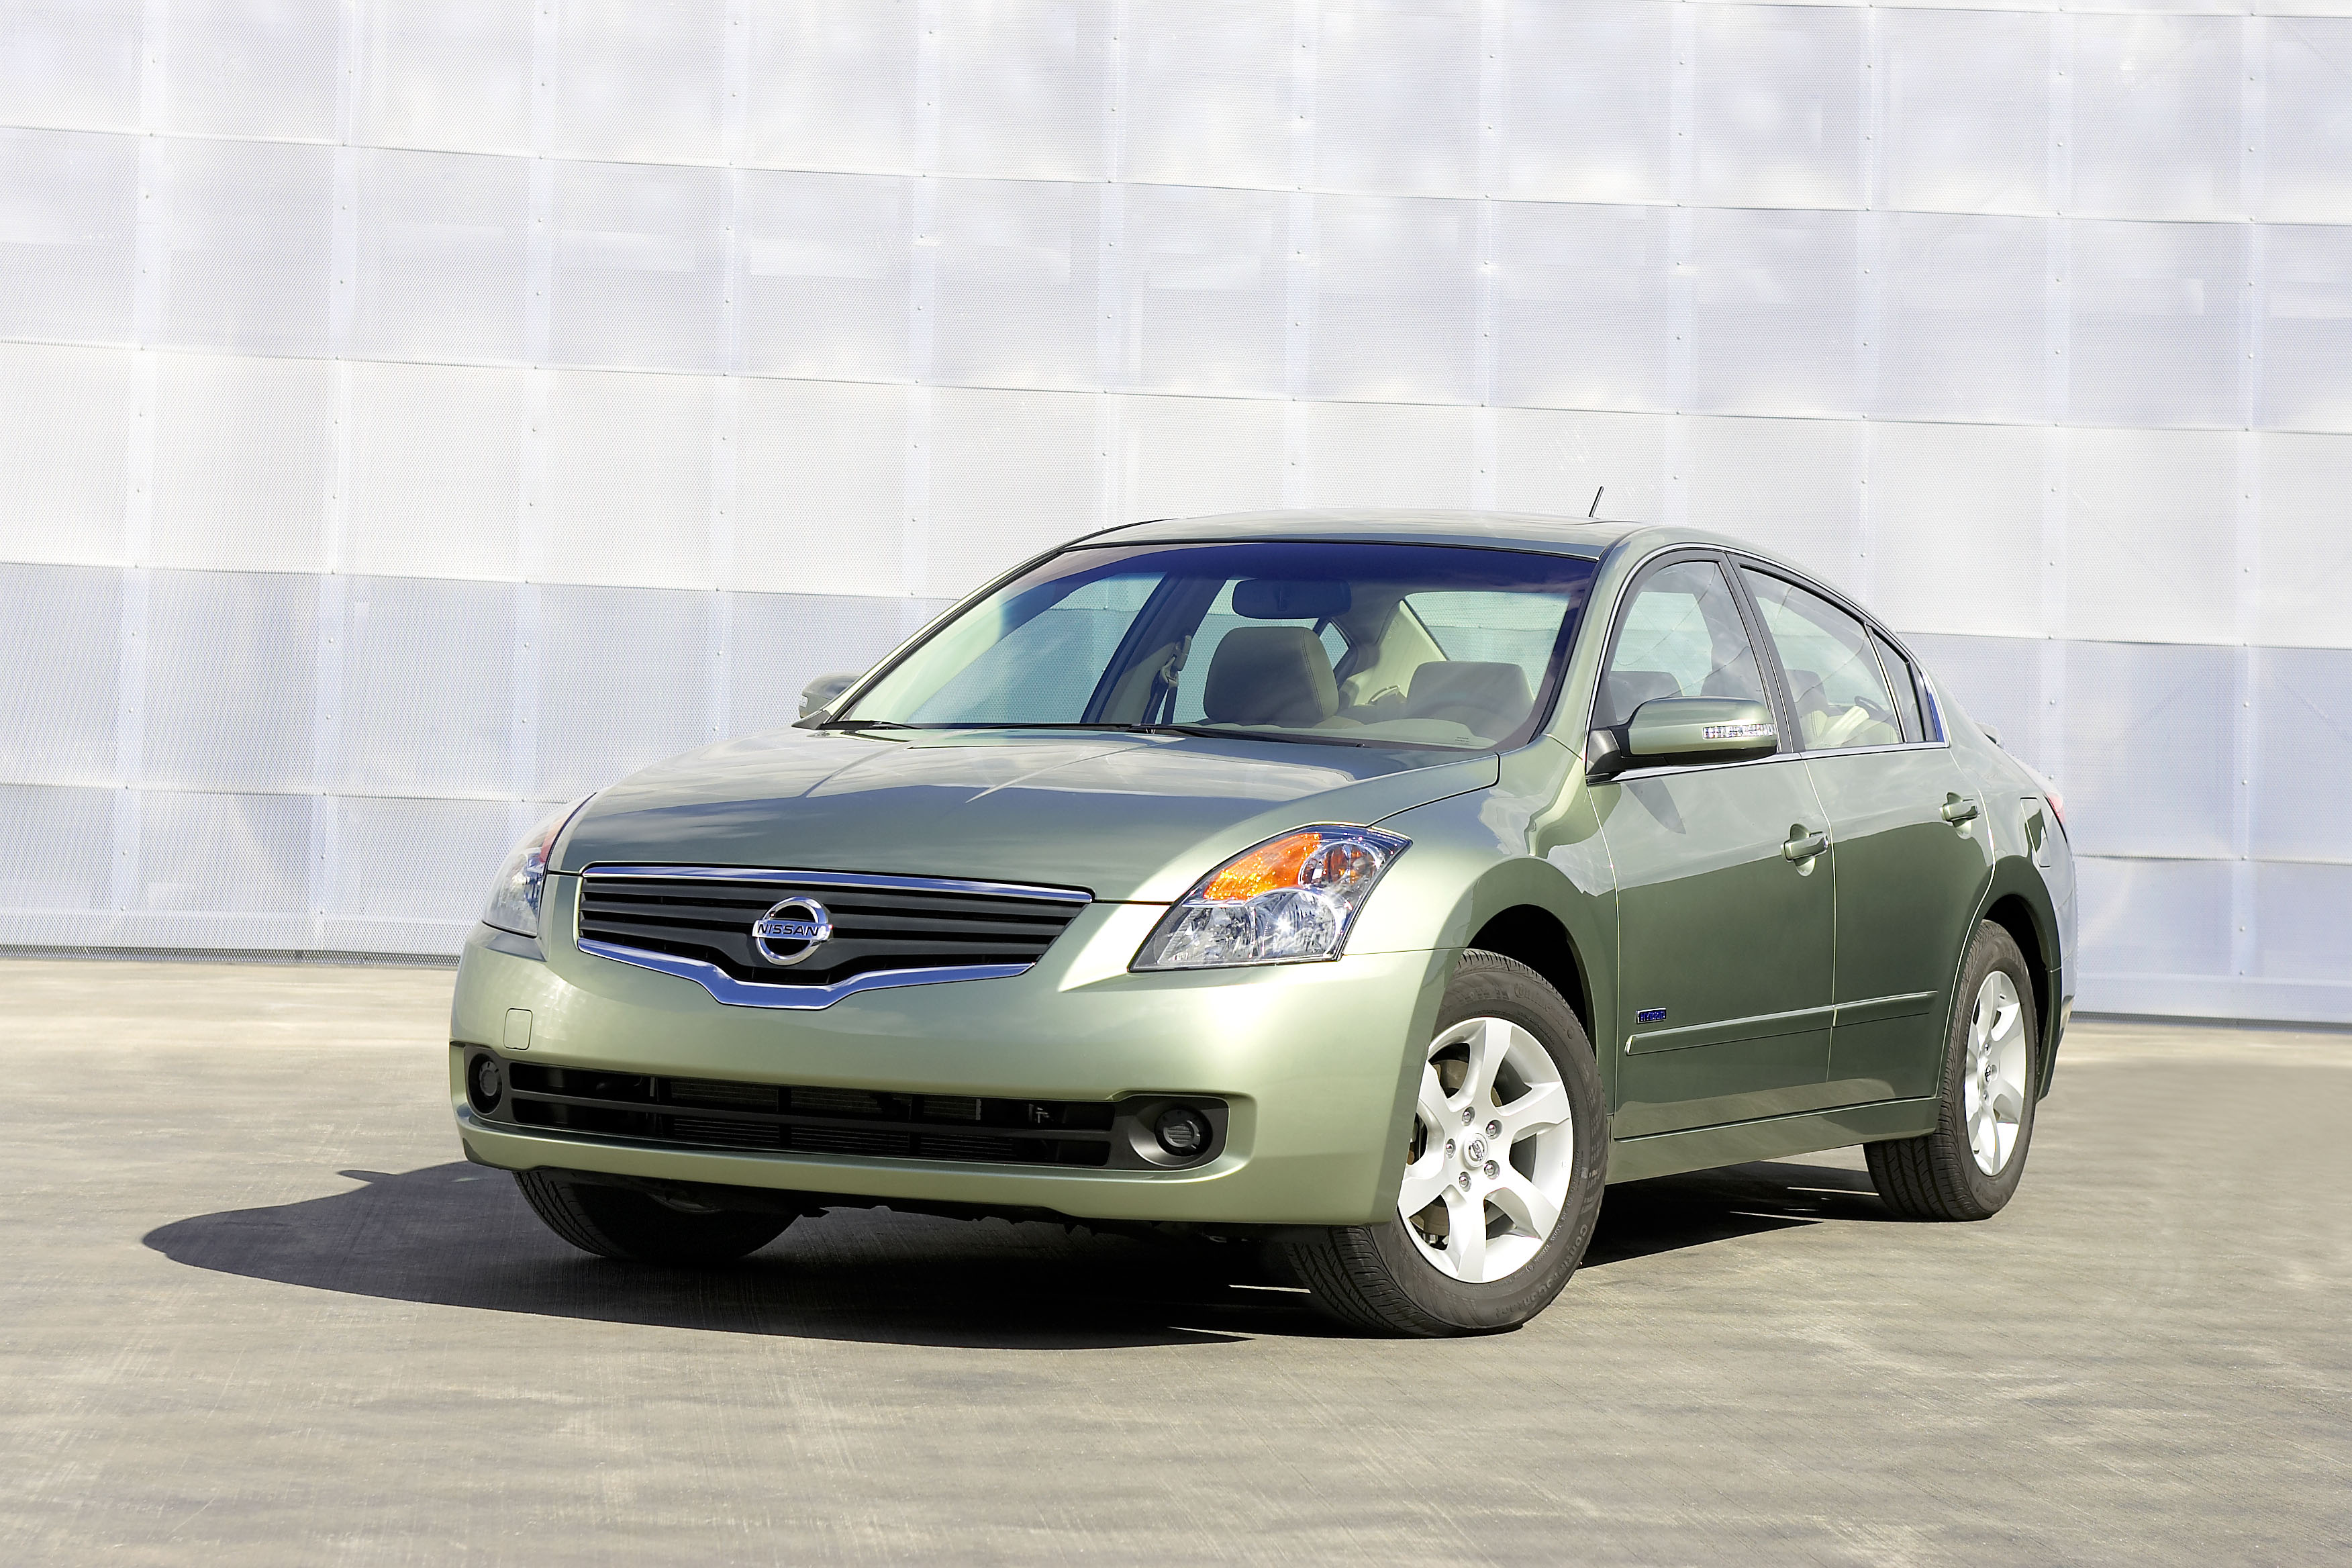 2007 Nissan Altima Hybrid | Top Speed. »